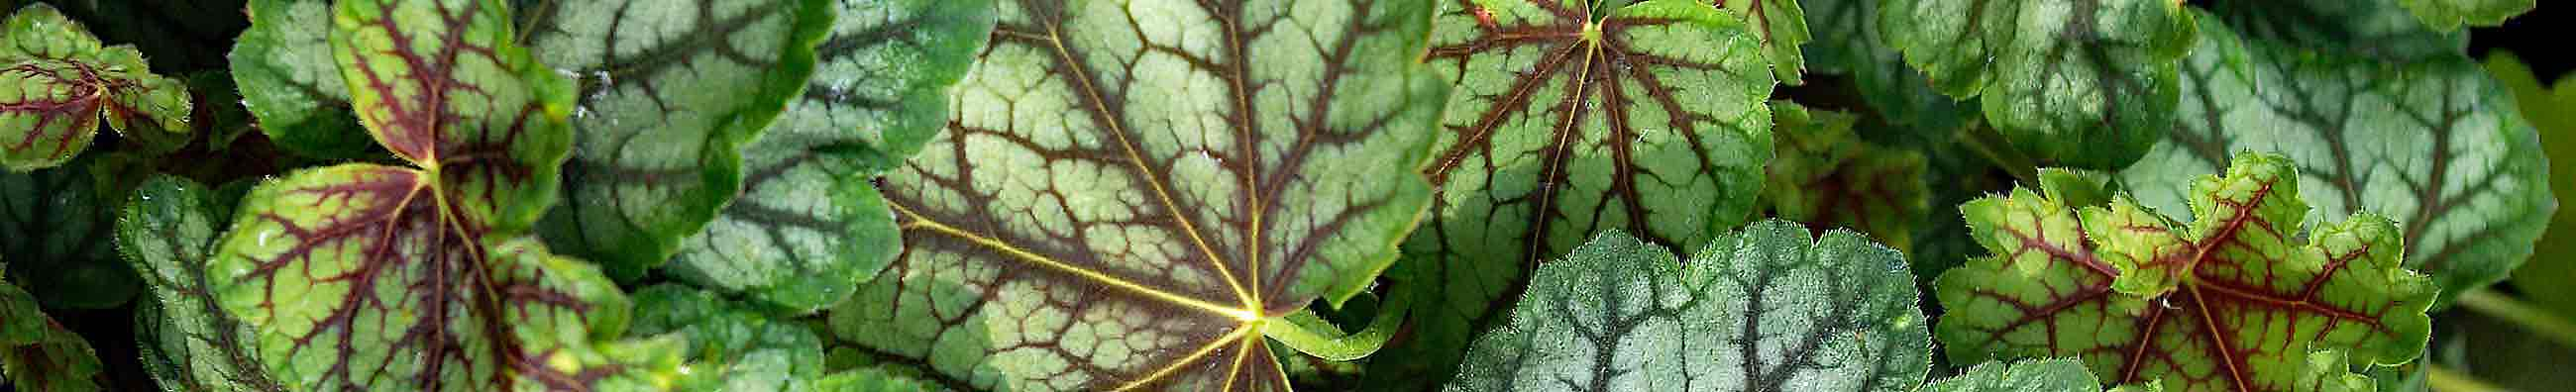 A clump of Heuchera 'Green Spice' plants in a garden border, with their attractive silver-green and deep burgundy veined leaves.